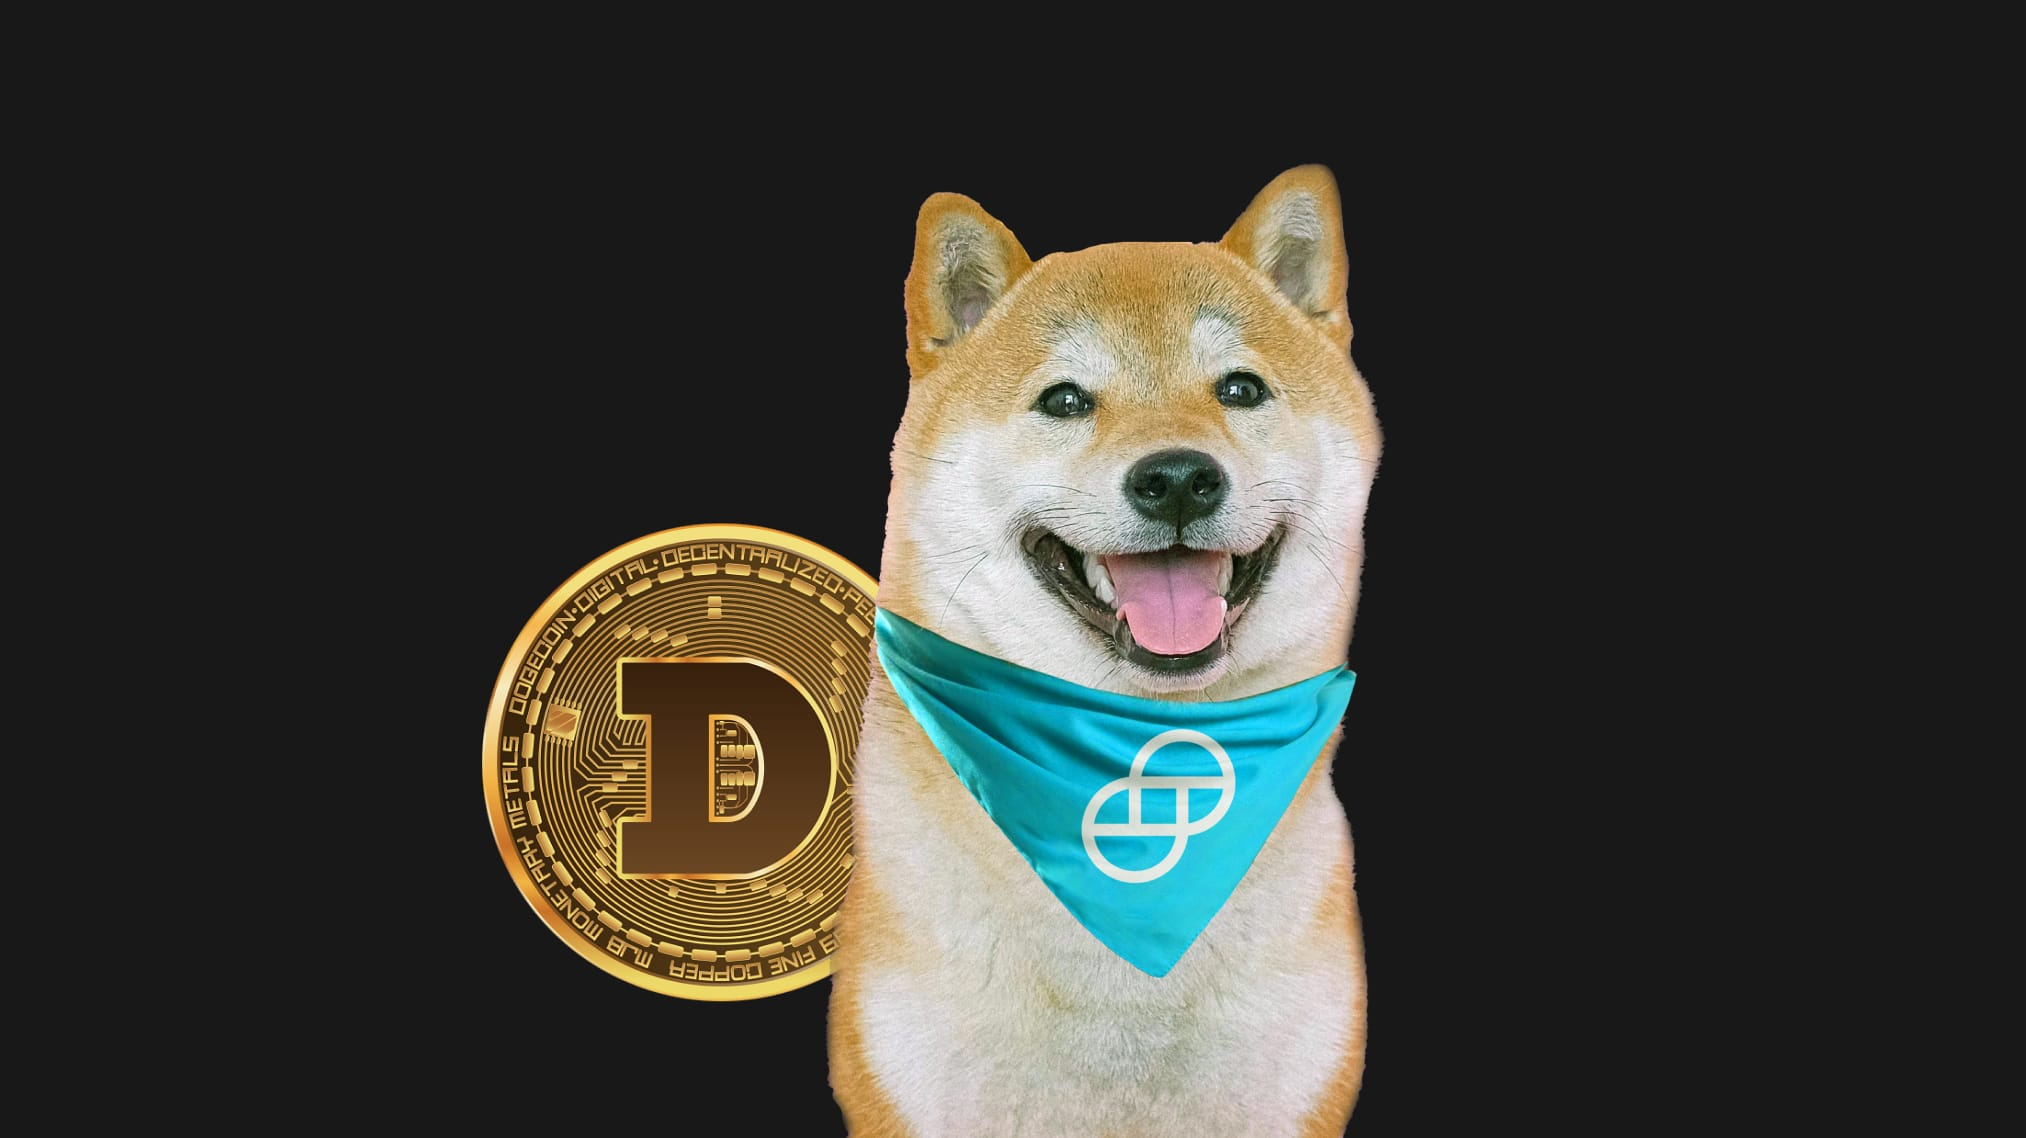 Gemini Becomes Latest Crypto Platform to Support Dogecoin